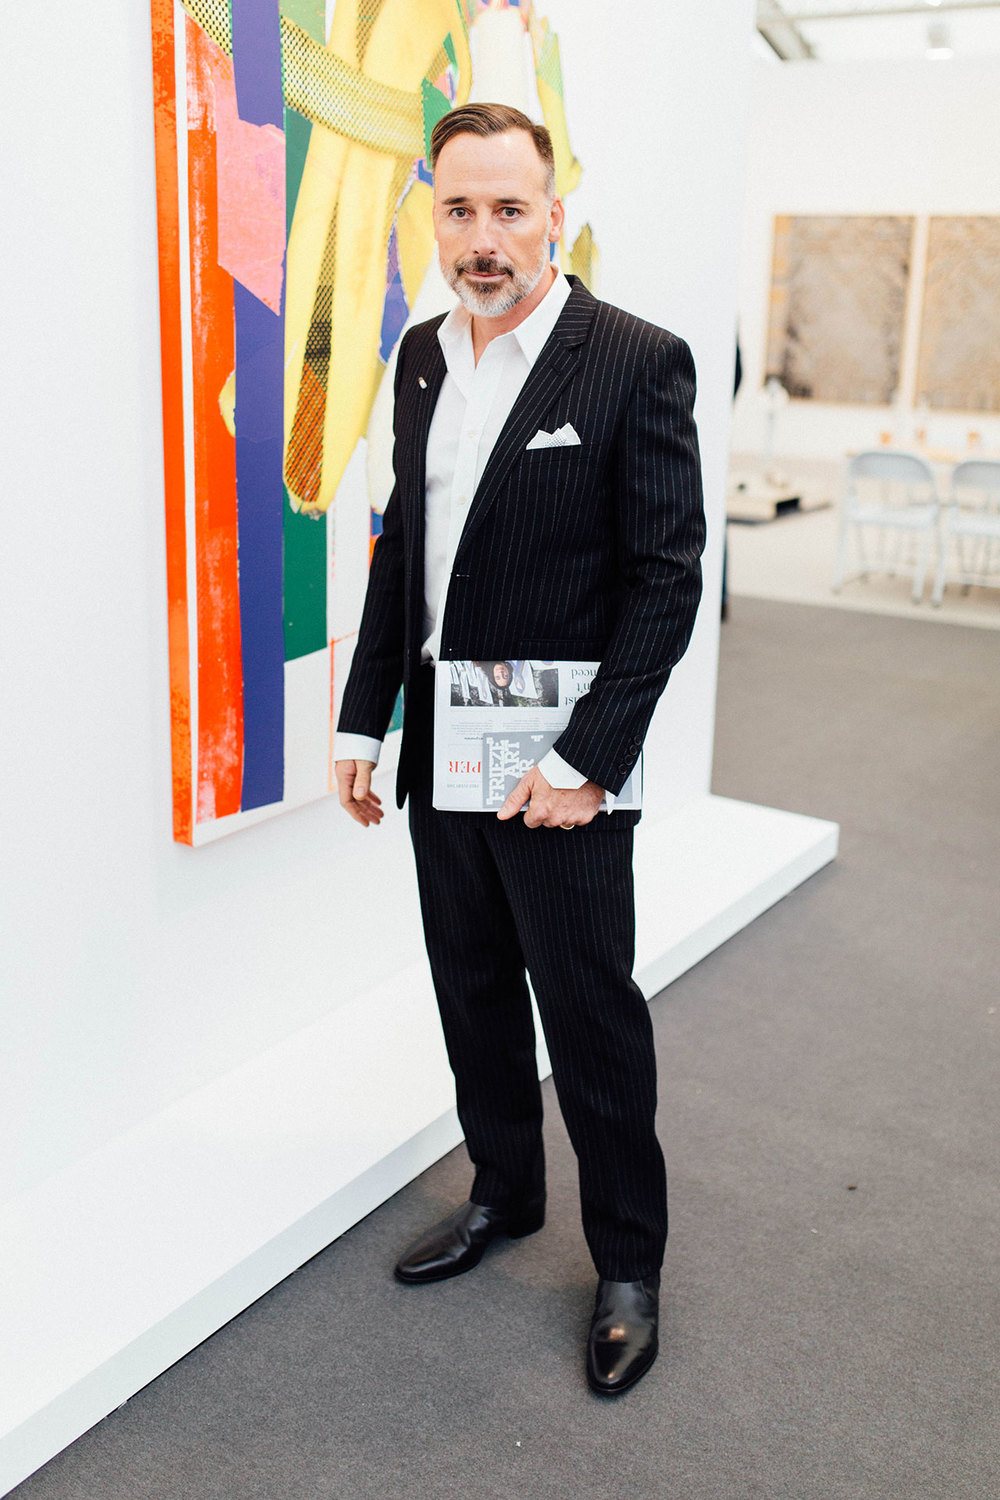 David-Furnish-vogue-13oct15_MichaelNewingtonGray_b.jpg